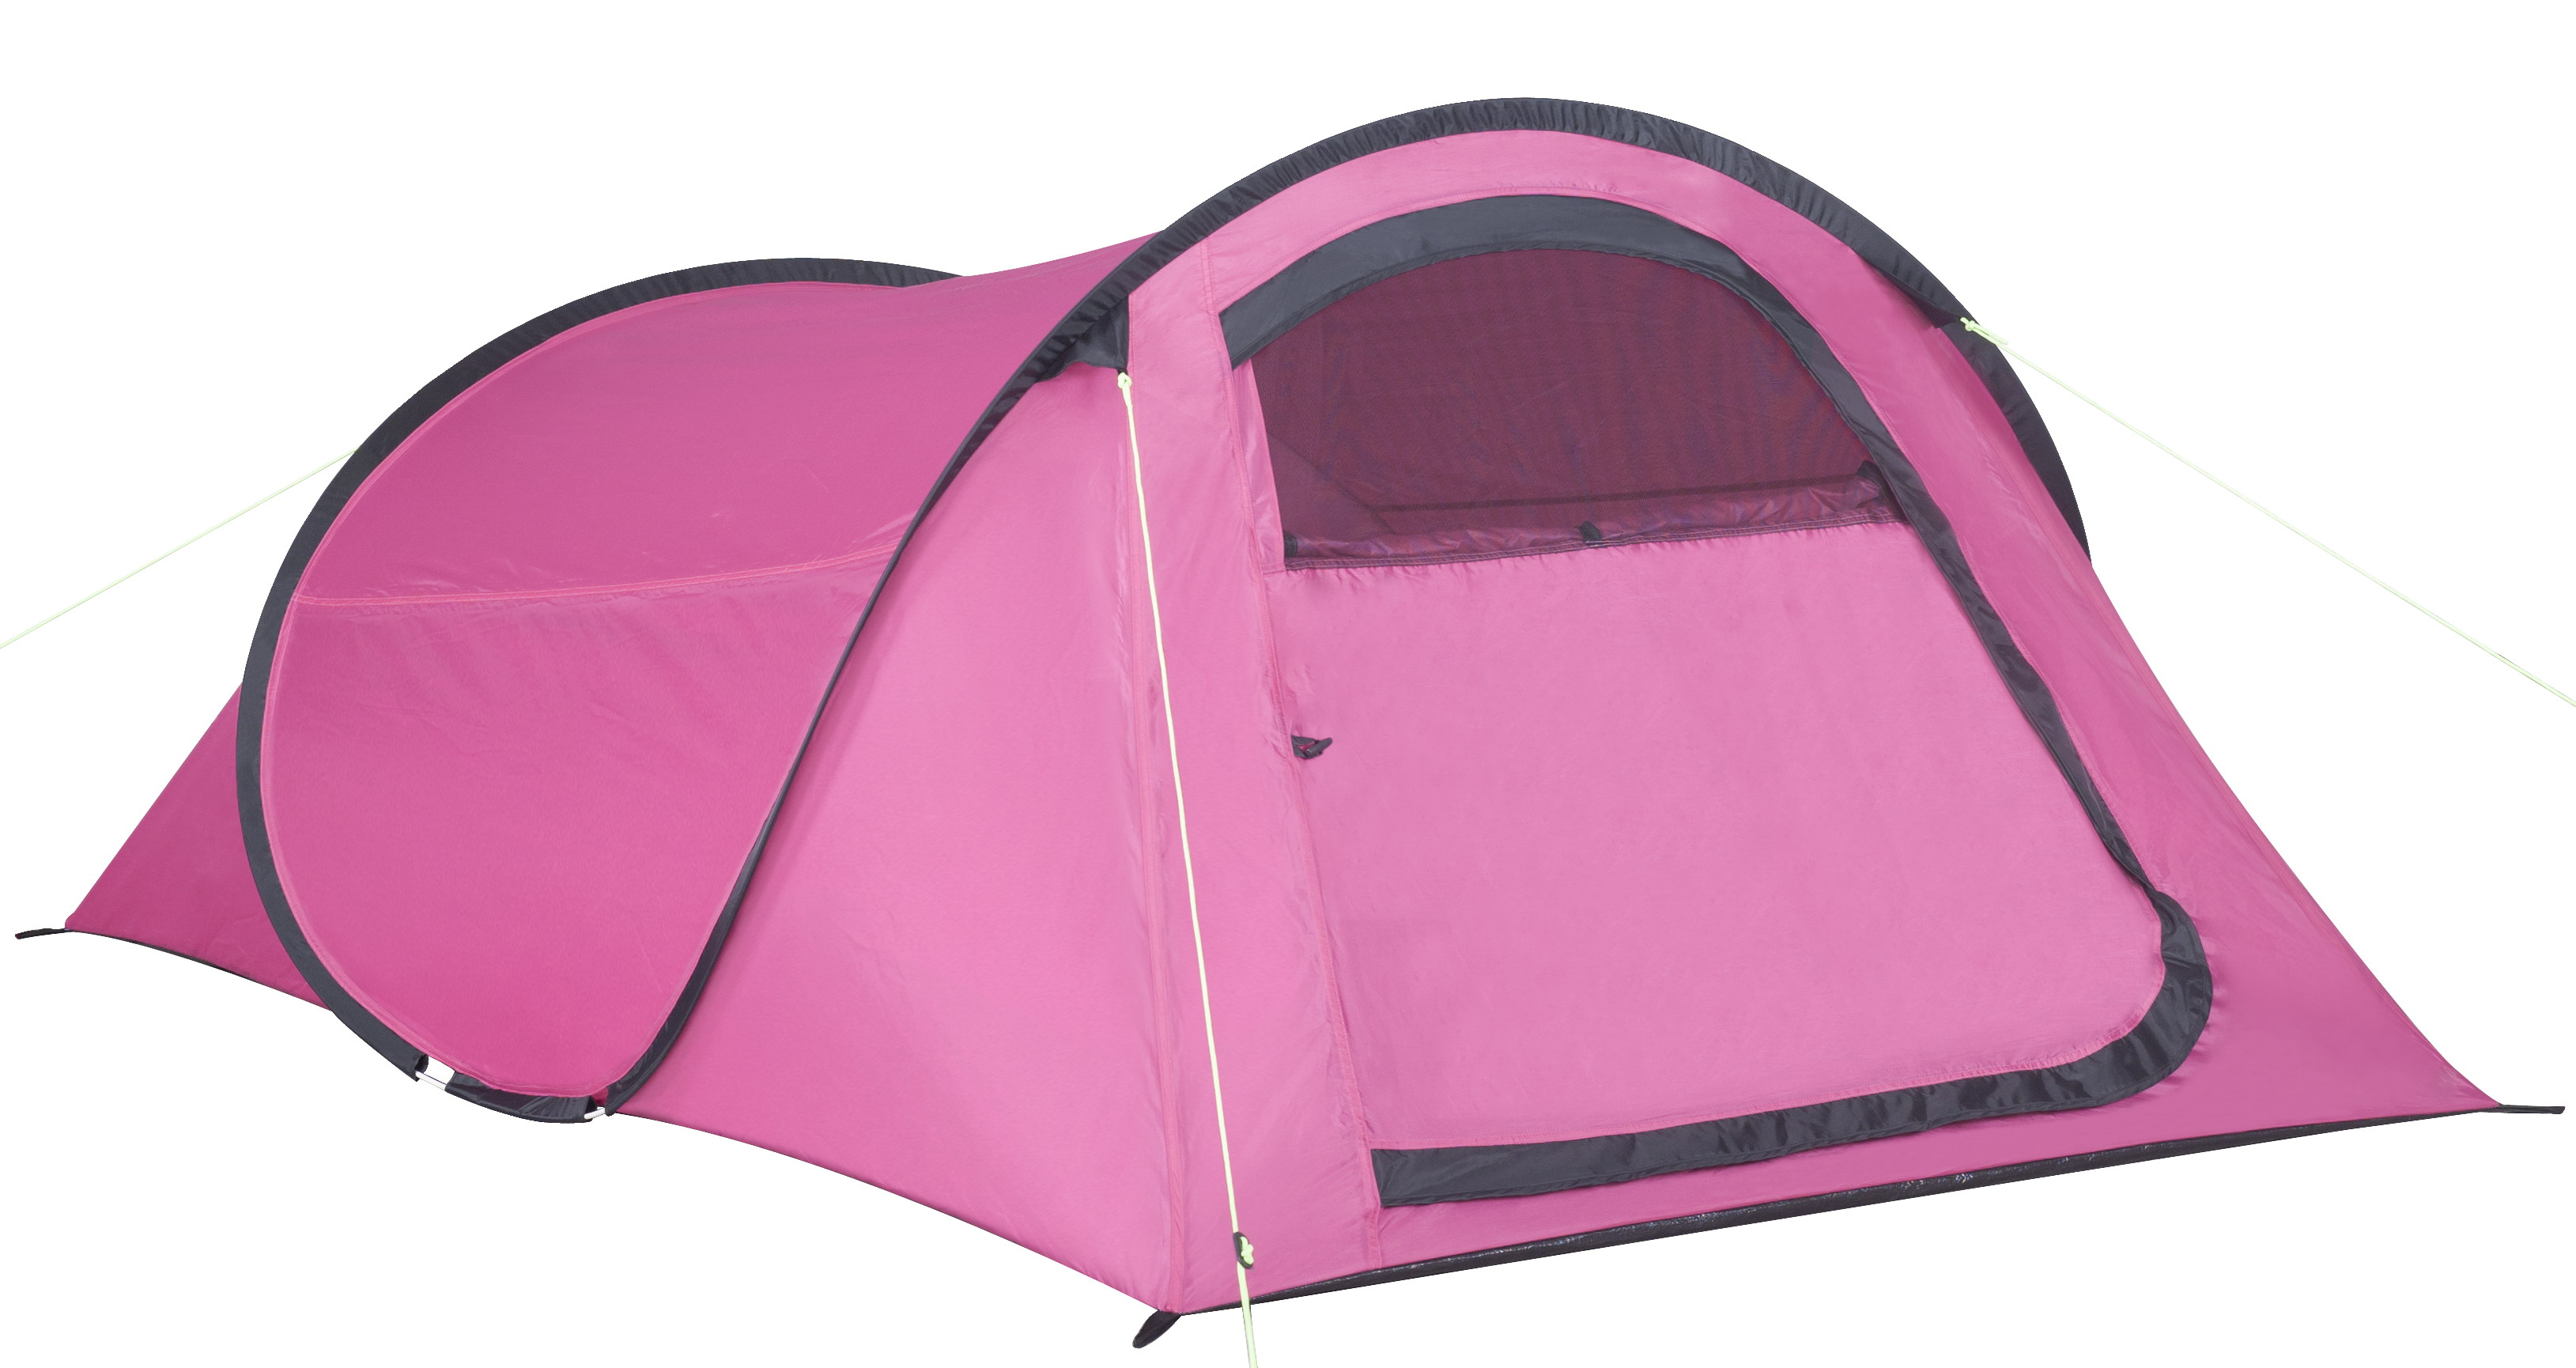 Theses pop up tents are fantastic at £22 each available in store or online they just pop right up and are ready to c& in I hope we have some of these ...  sc 1 st  Hex Mum & Camping Anyone ? Asda Tents maybe - Hex Mum Plus 1Hex Mum Plus 1